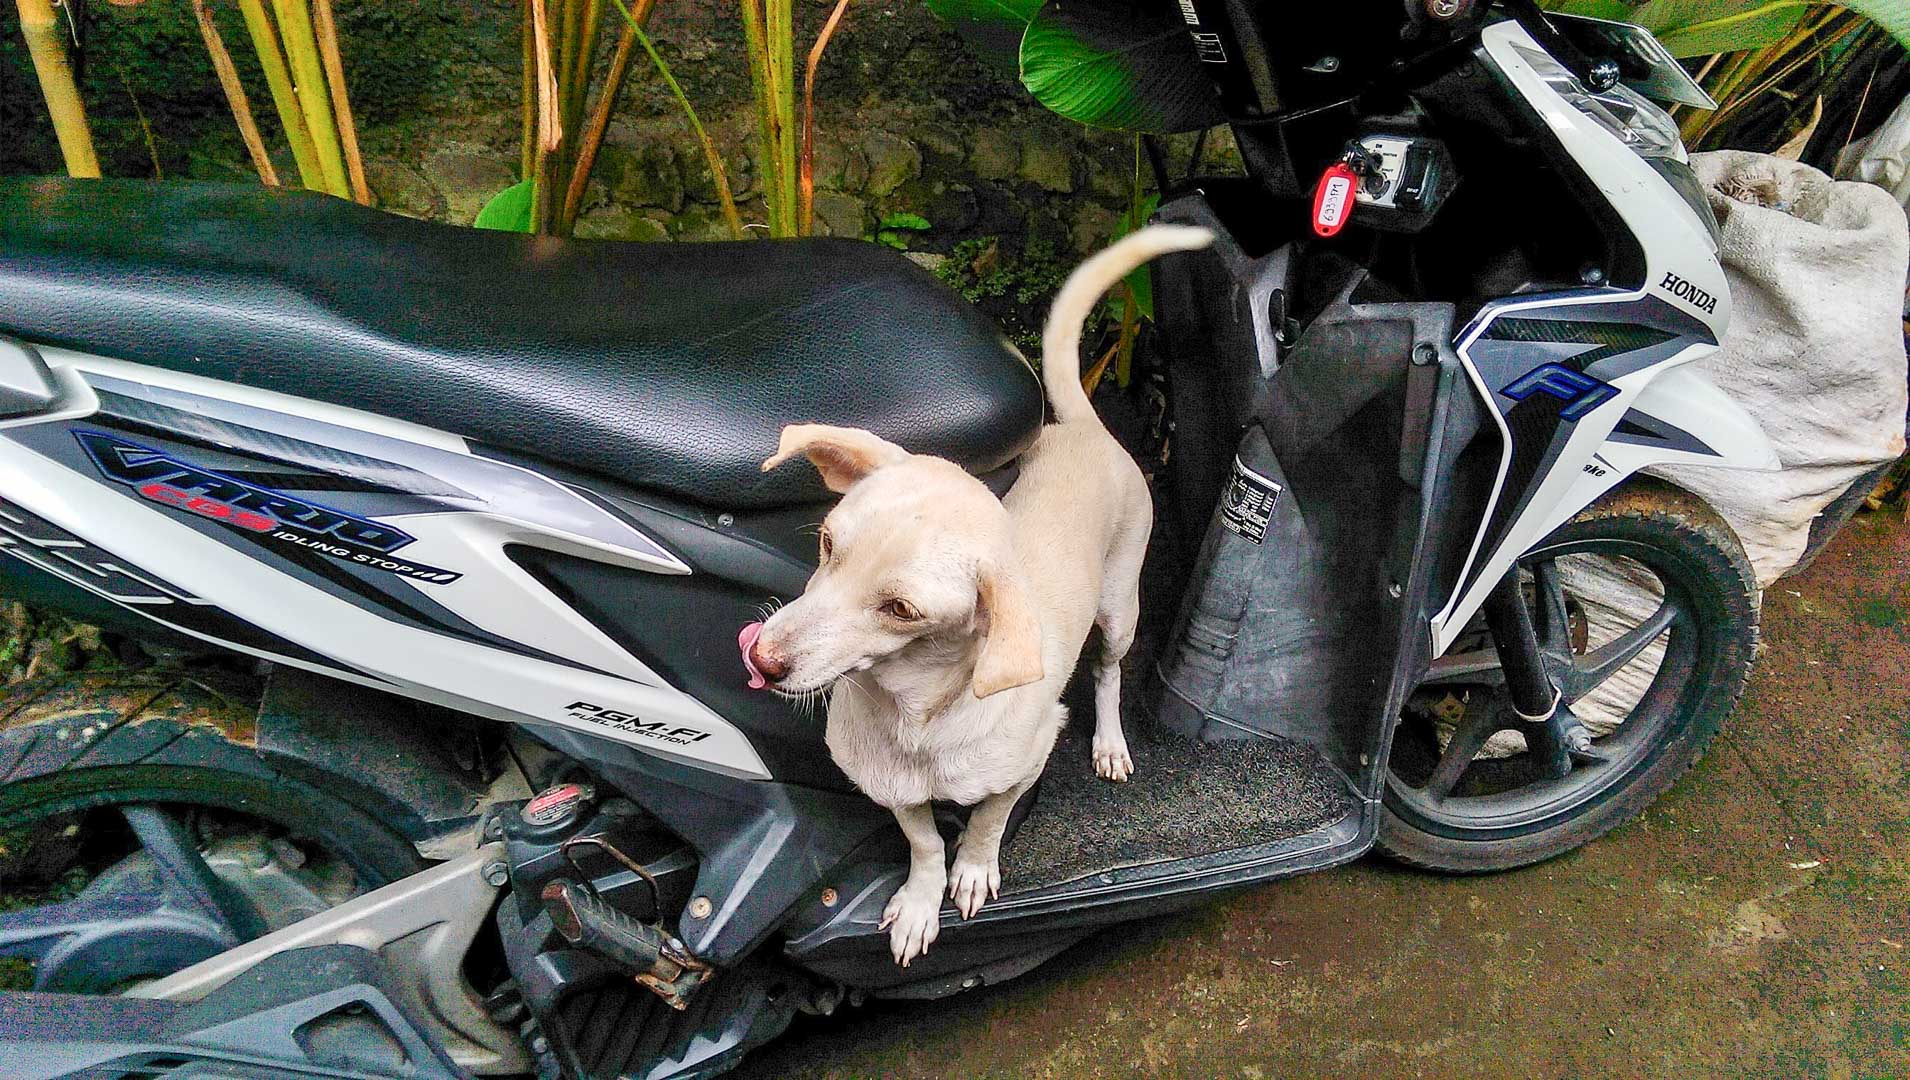 Itchy hanging out on my scooter